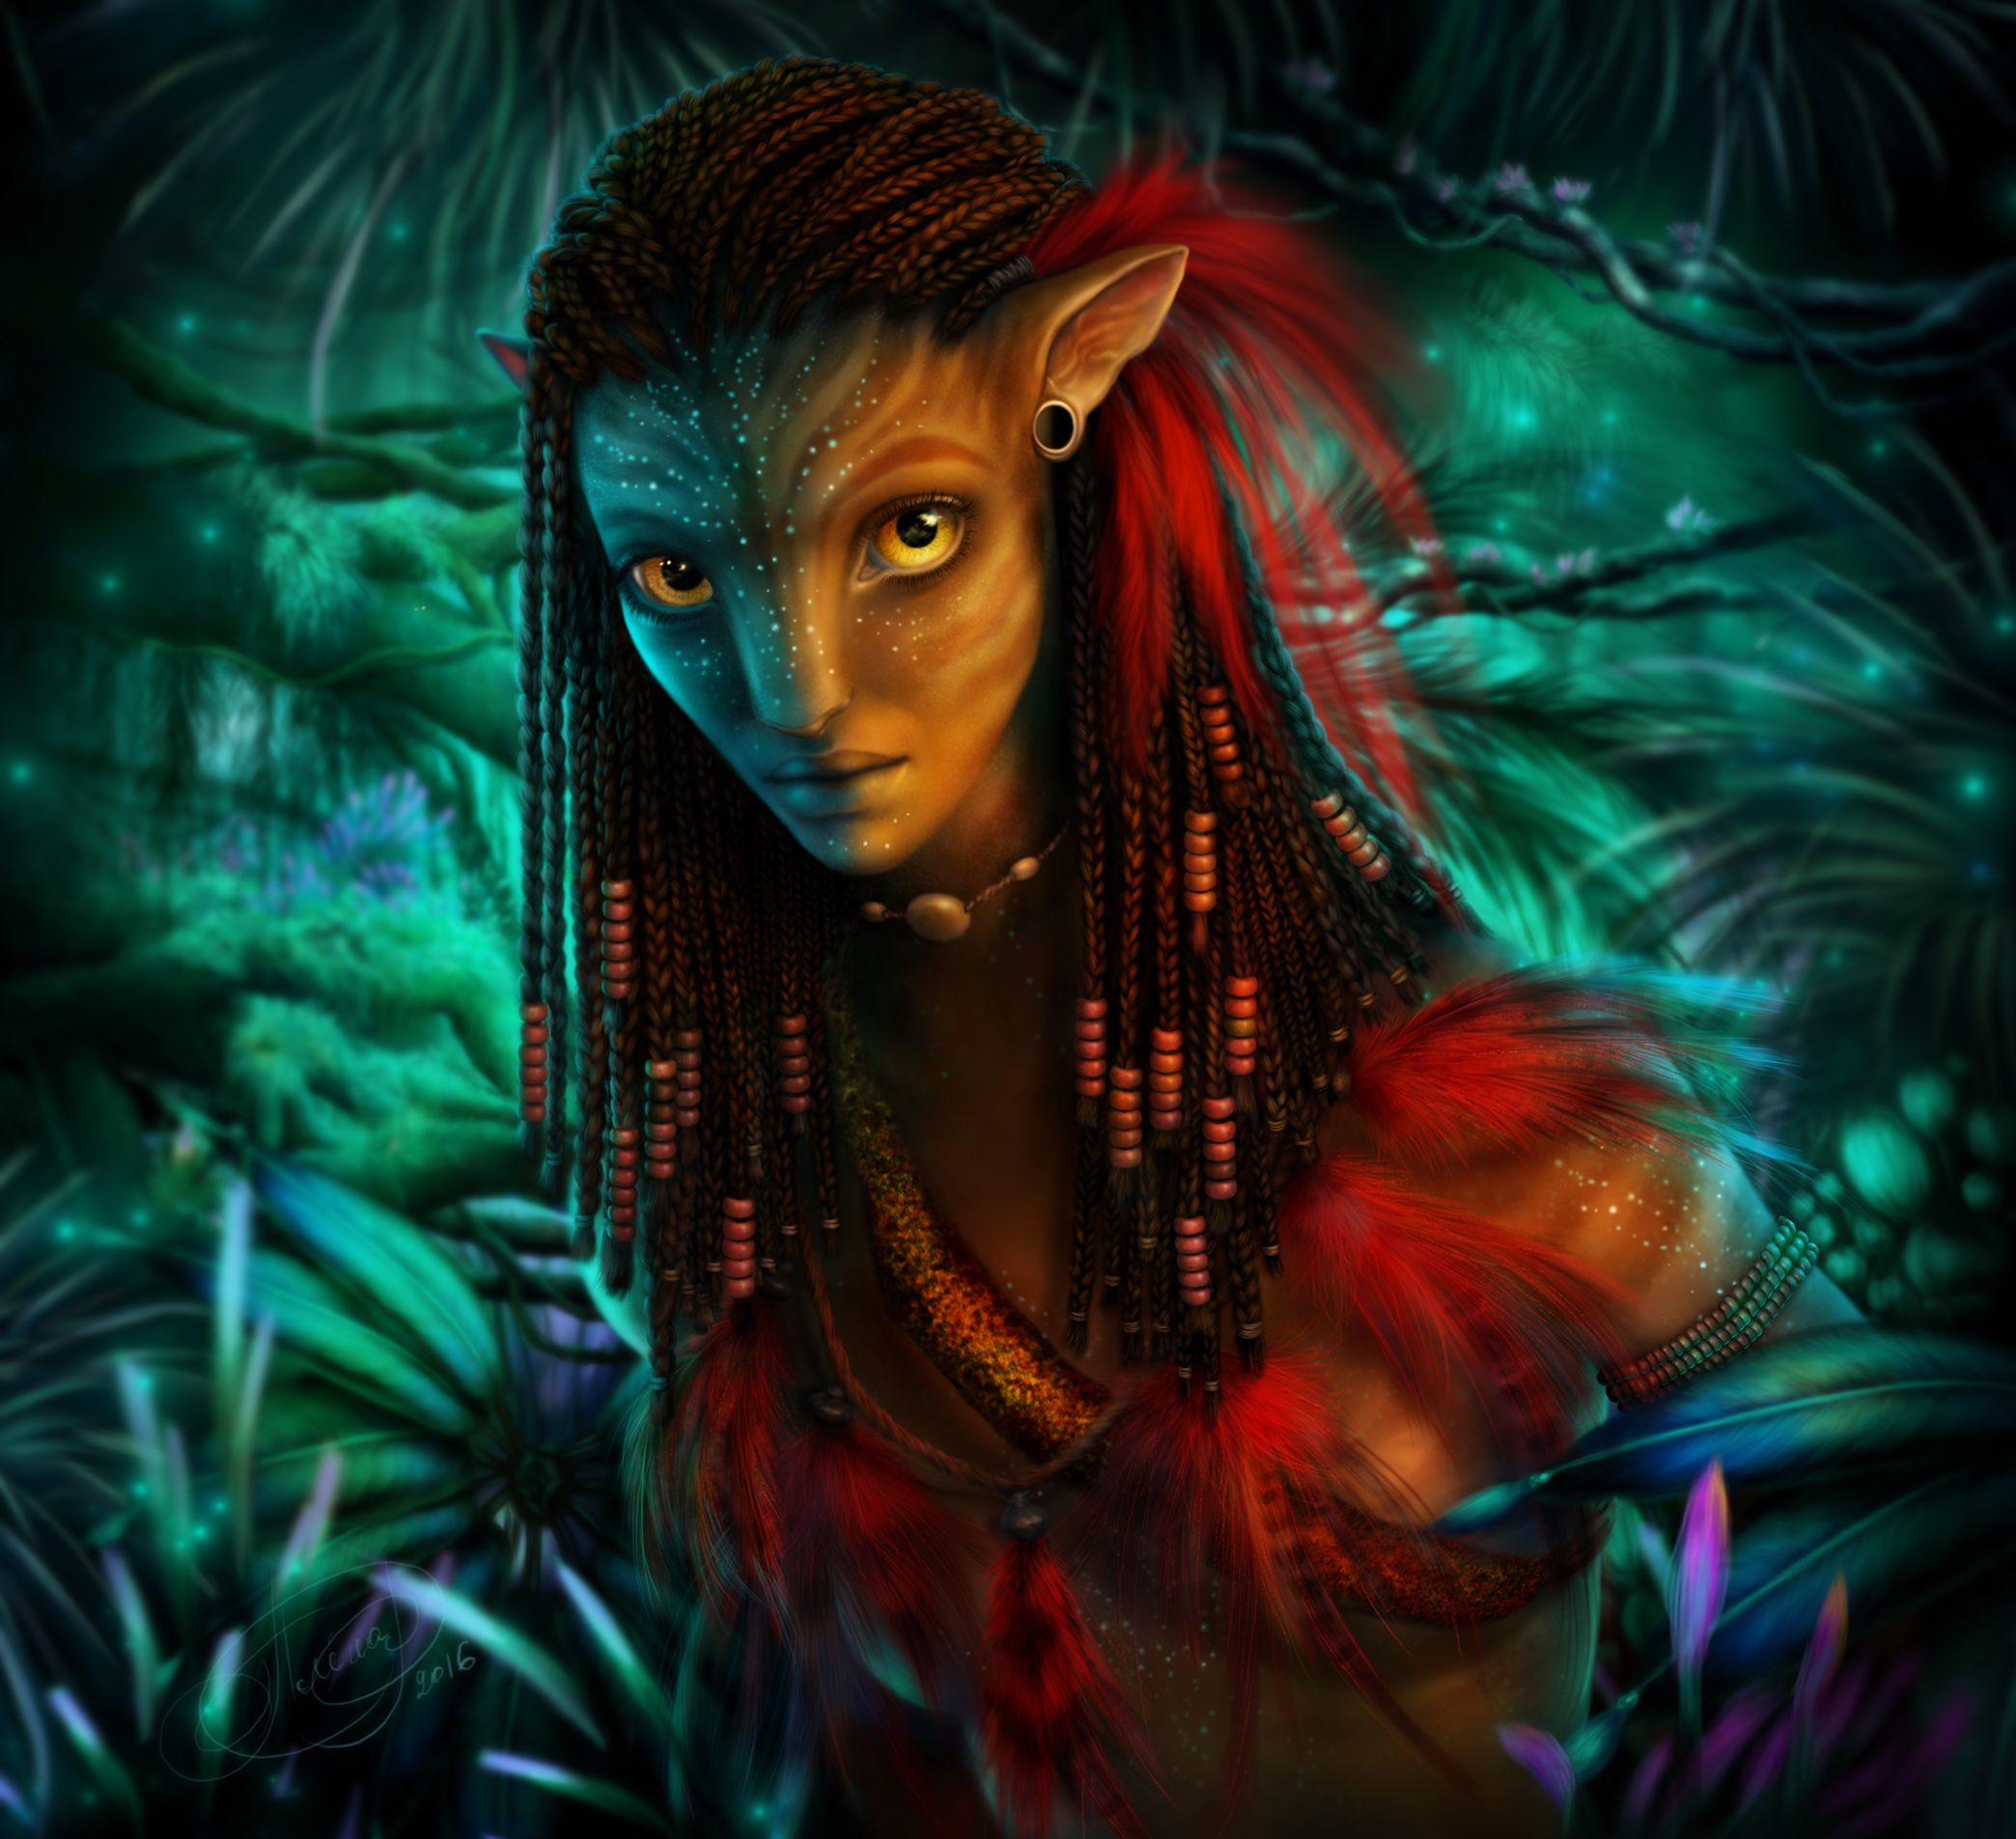 109 Best Images About Avatar The Movie On Pinterest: Best Film Avatar Images On Pinterest